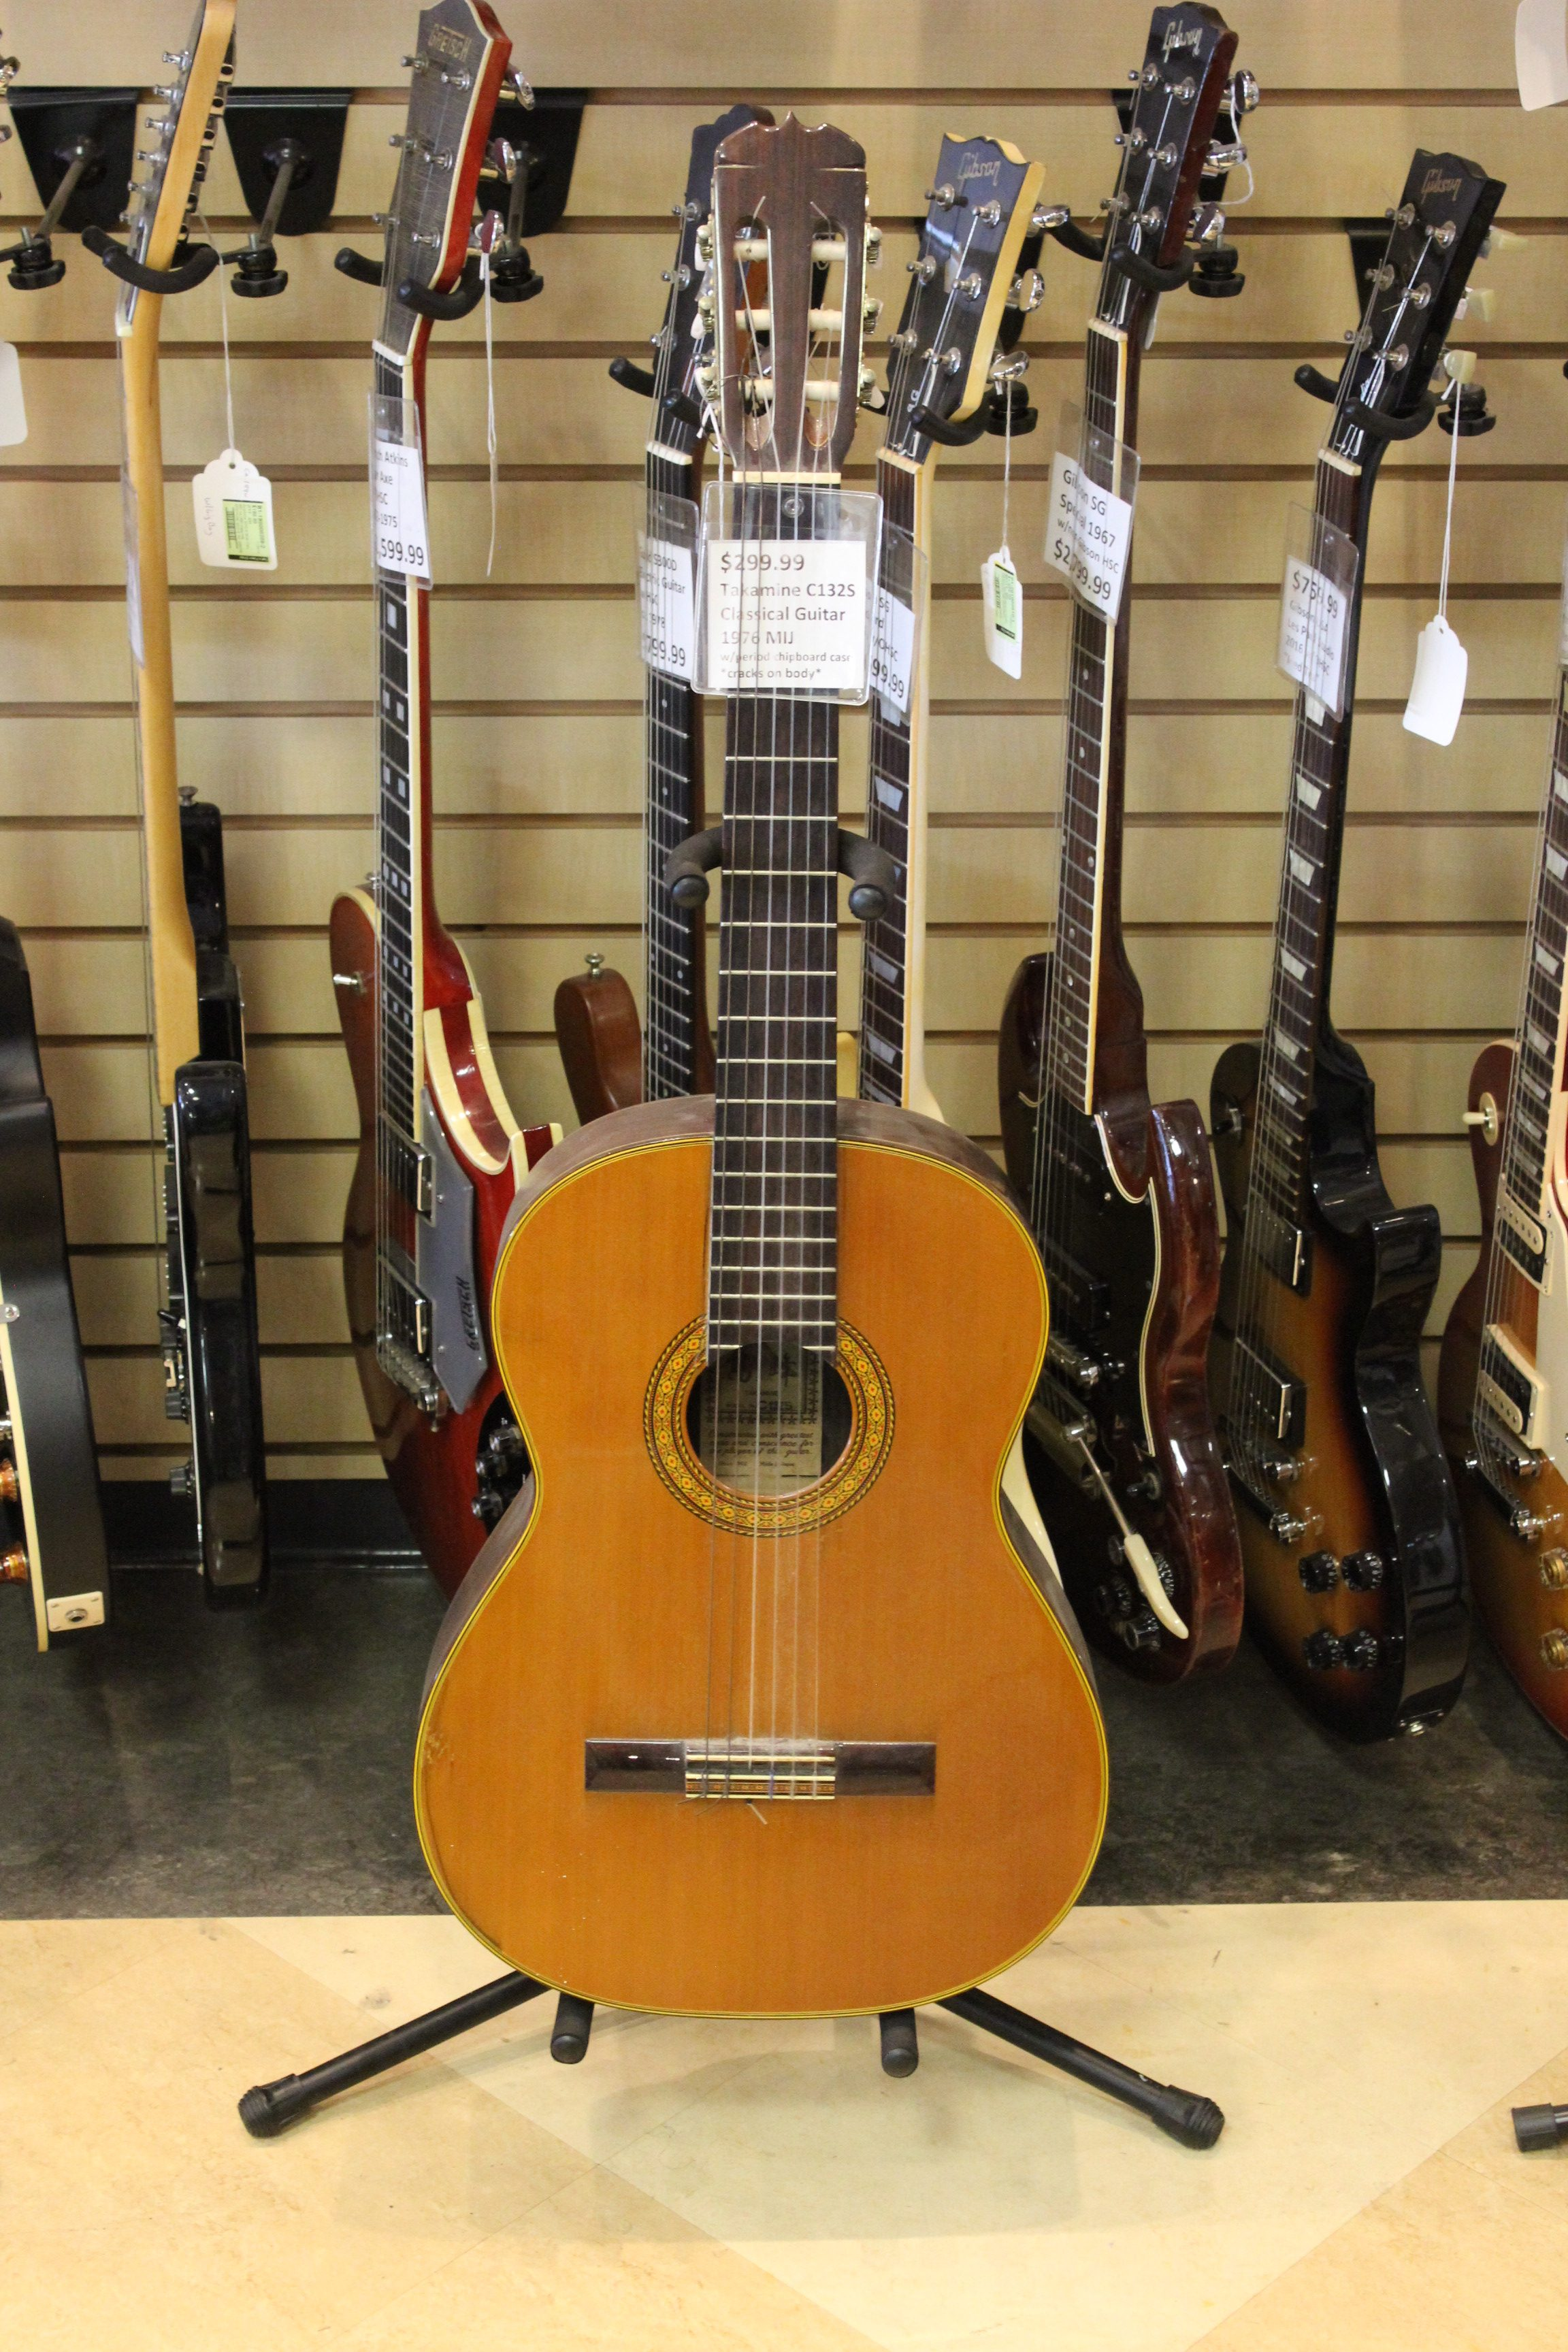 takamine c132s classical acoustic guitar mij 1976 used ted 39 s pawn shop